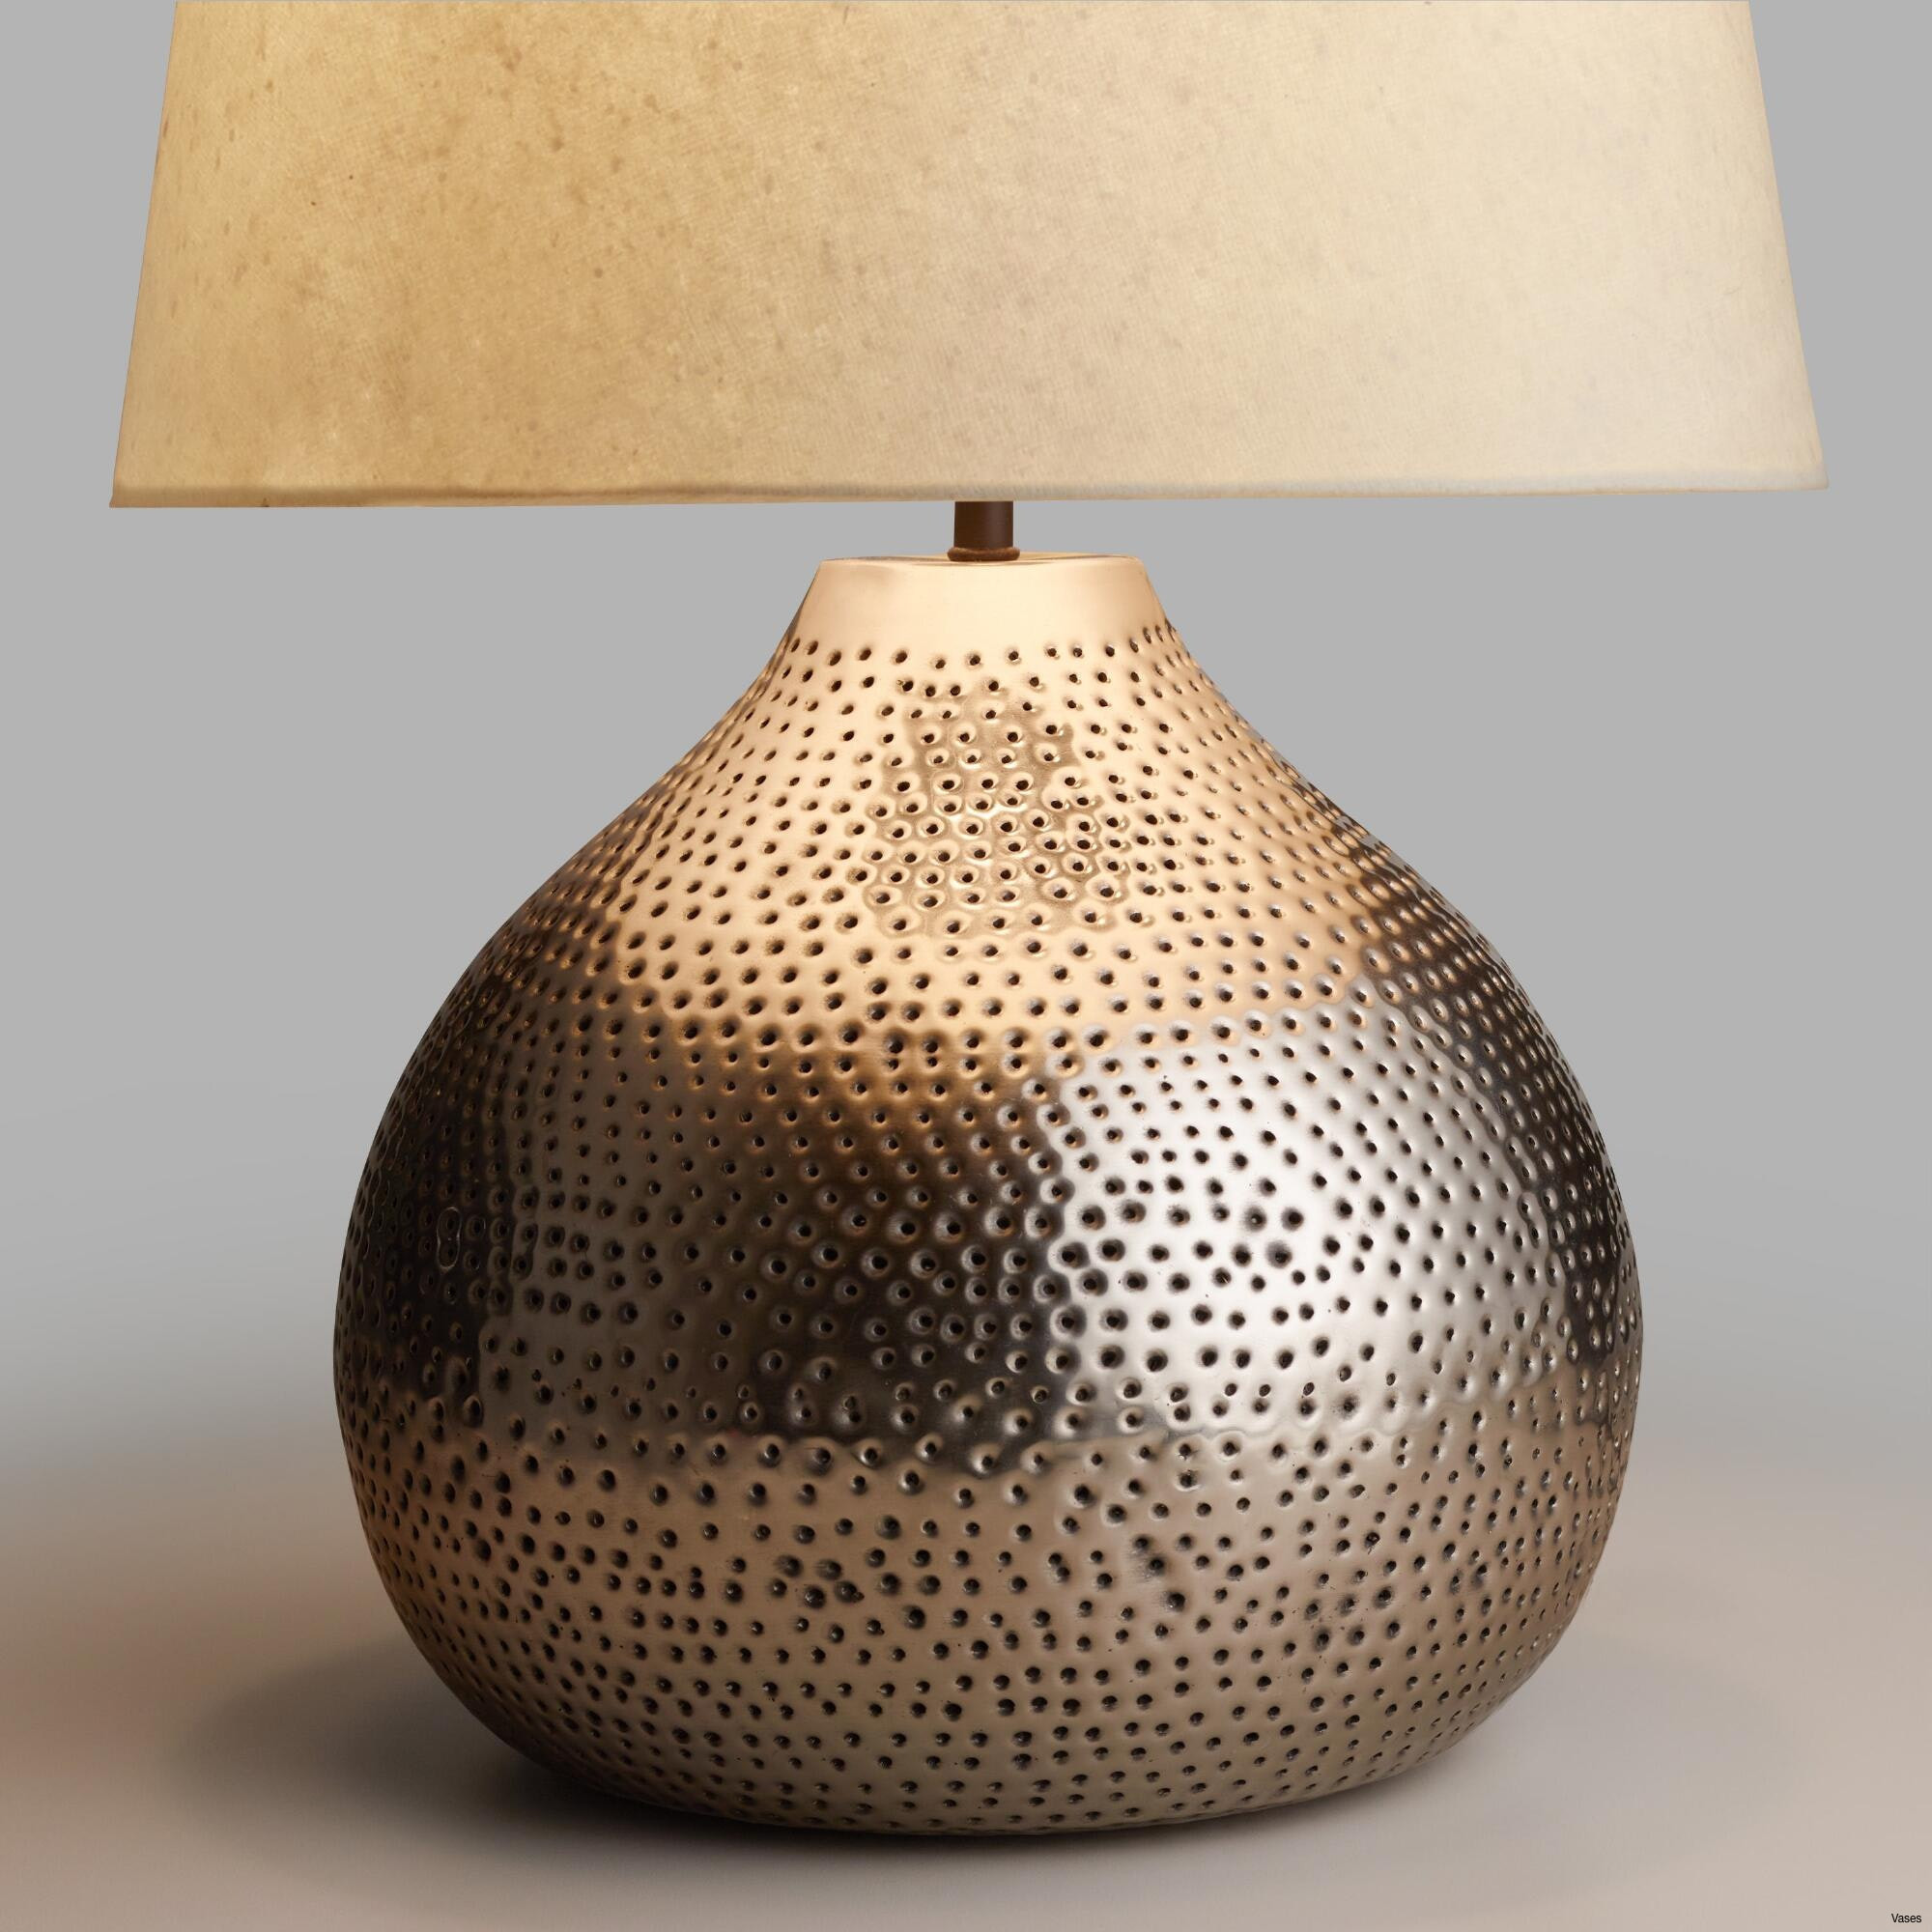 lighted vase stand of vase light base image gold table lamp base fresh how to make a table regarding vase light base image gold table lamp base fresh how to make a table lamp 10h